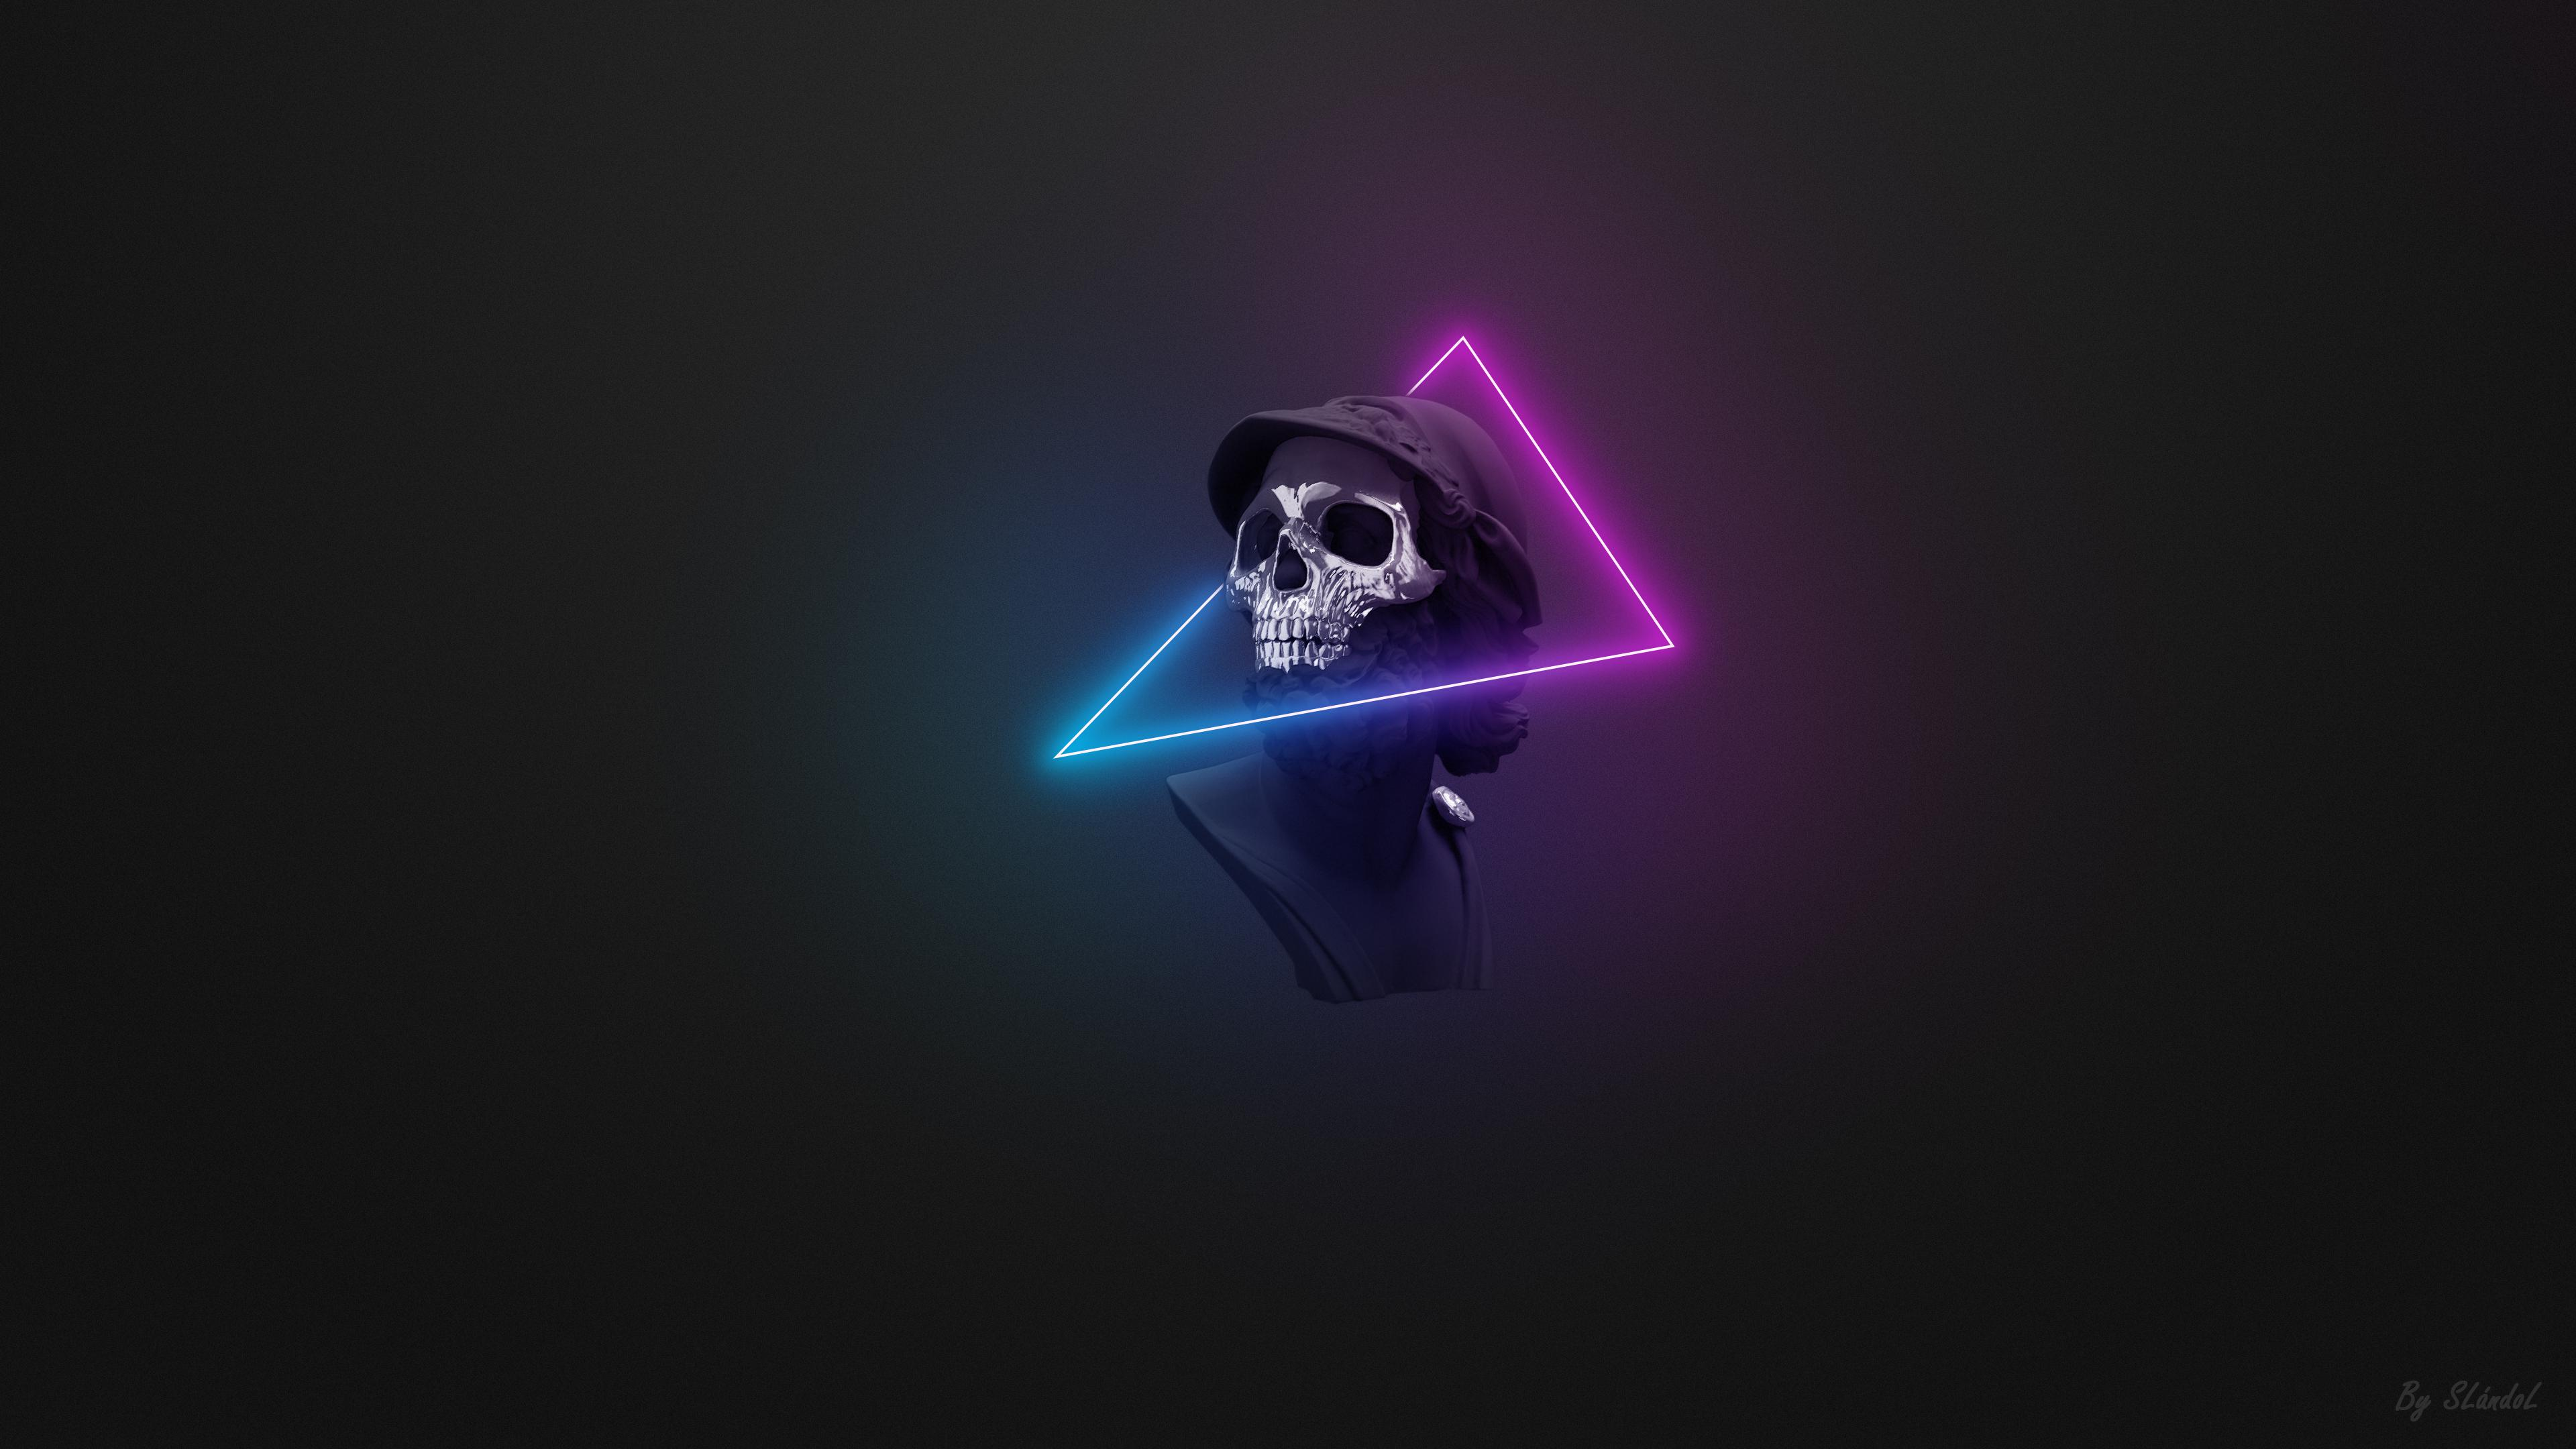 Skull 4k Wallpapers For Your Desktop Or Mobile Screen Free And Easy To Download